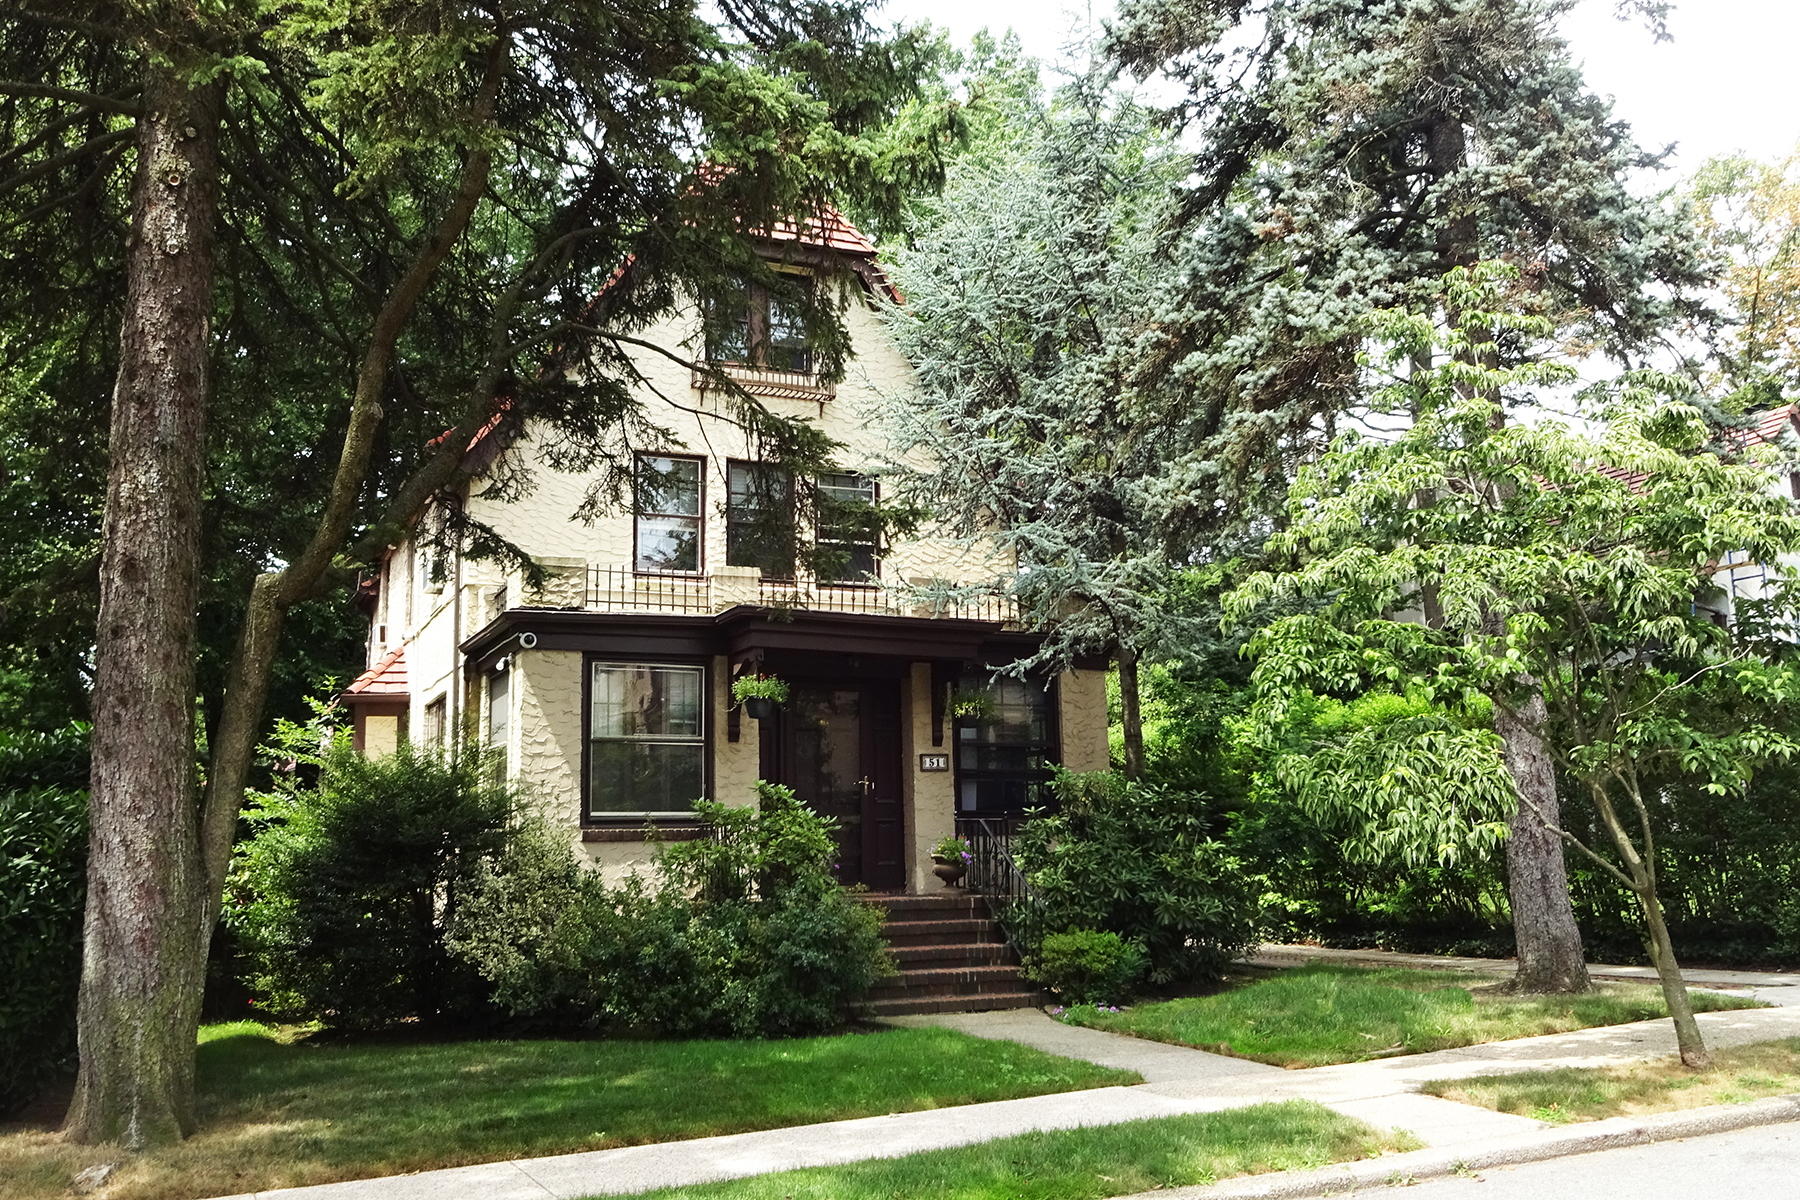 """Single Family Homes for Sale at """"PEACEFUL GARDENS SETTING"""" 51 Wendover Road, Forest Hills Gardens, Queens, New York 11375 United States"""